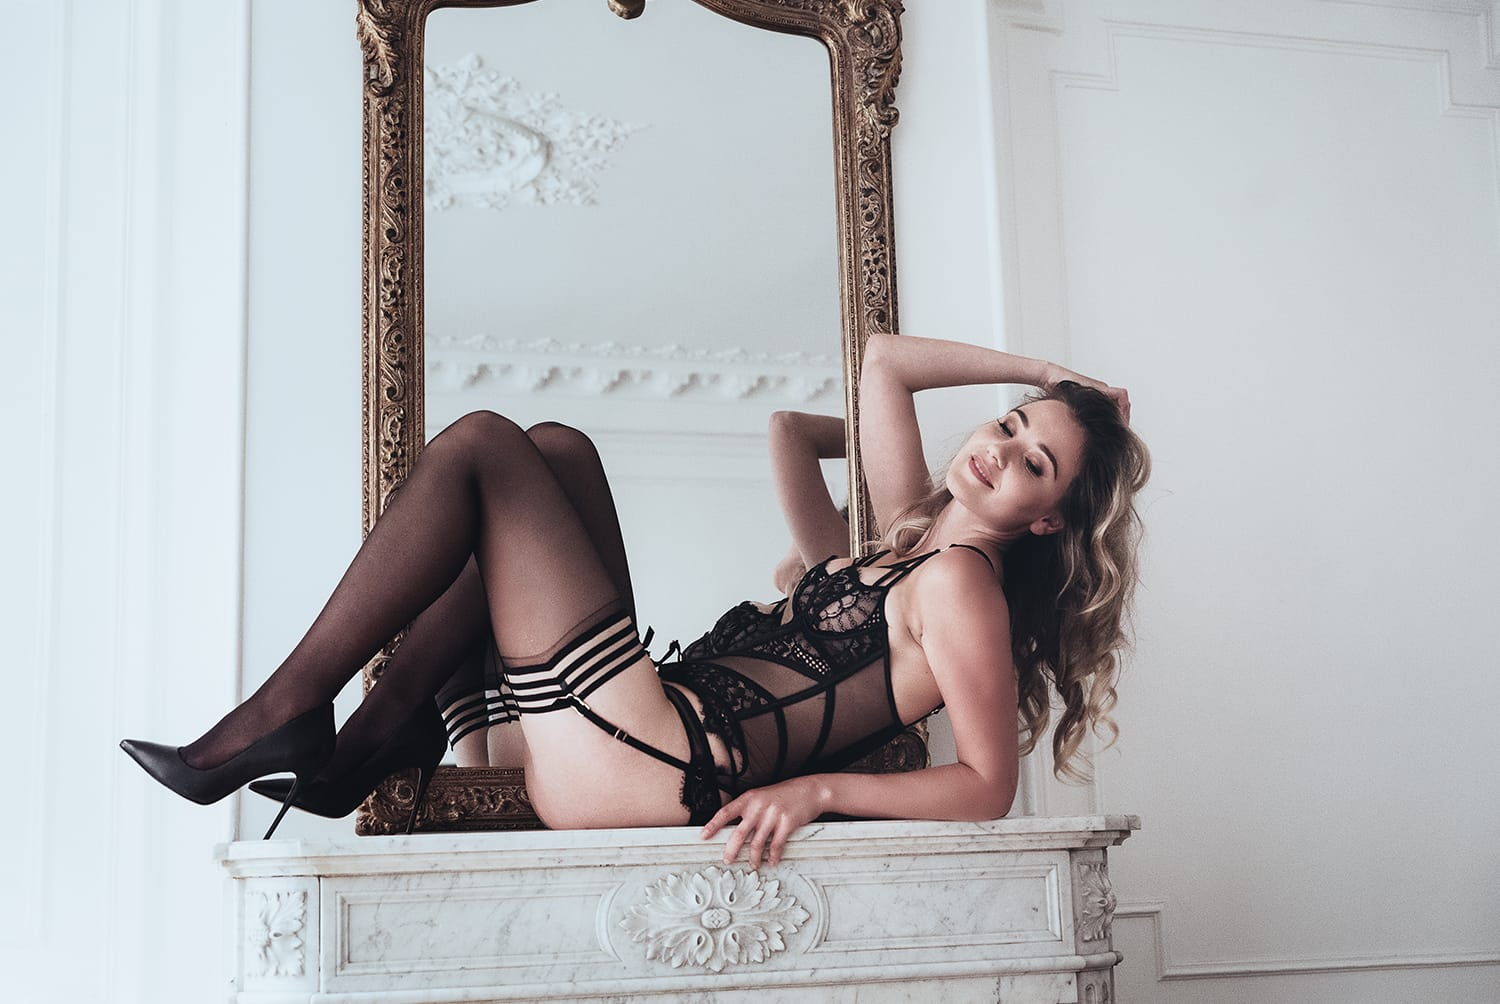 Beautiful girl on top of a parisian fireplace posing in lingerie during her portrait and boudoir photoshoot in Paris by Gloria Villa Photographer